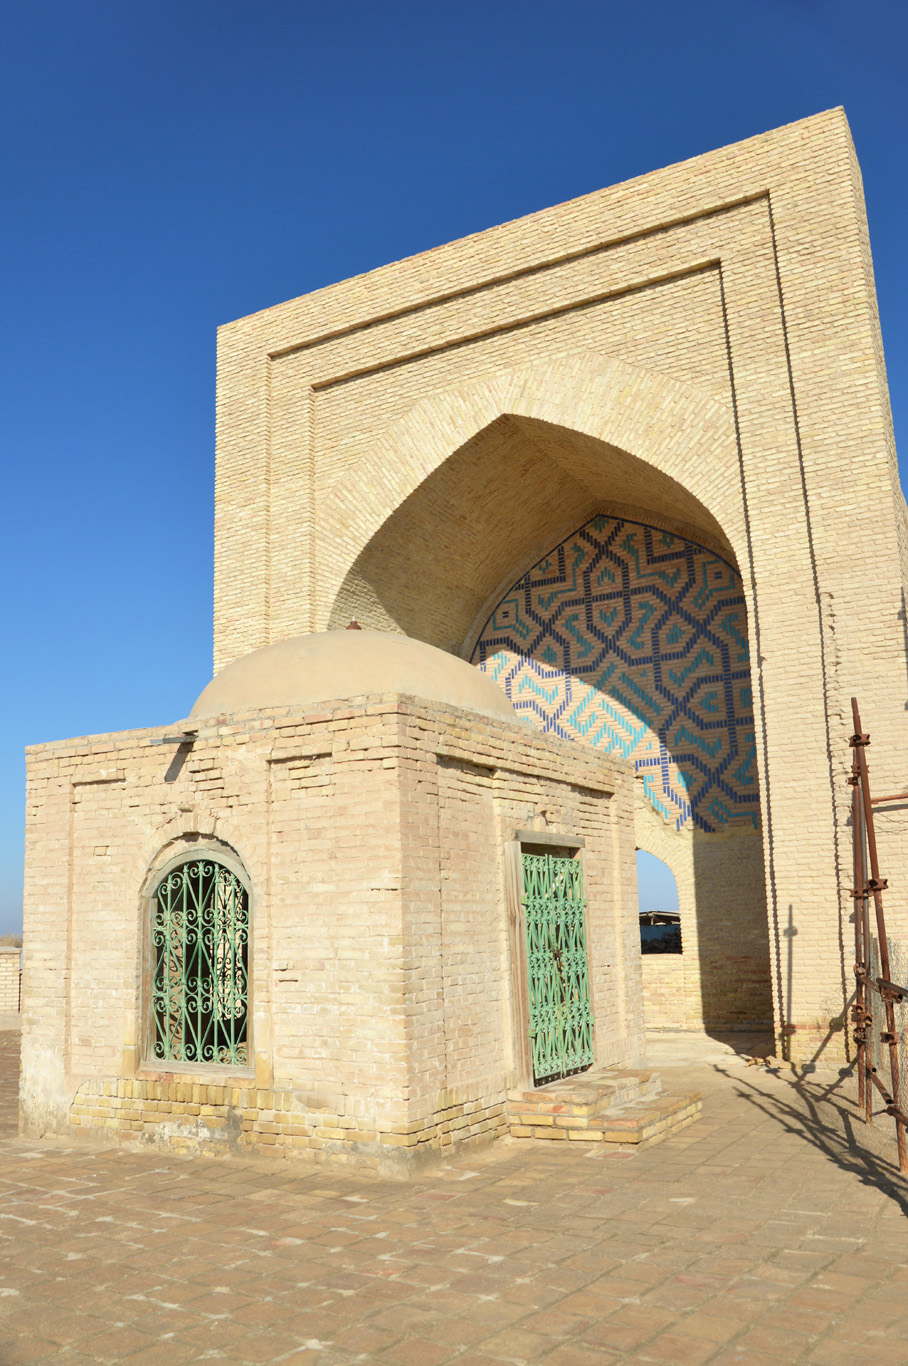 The Ashkabs mausoleum - main portal